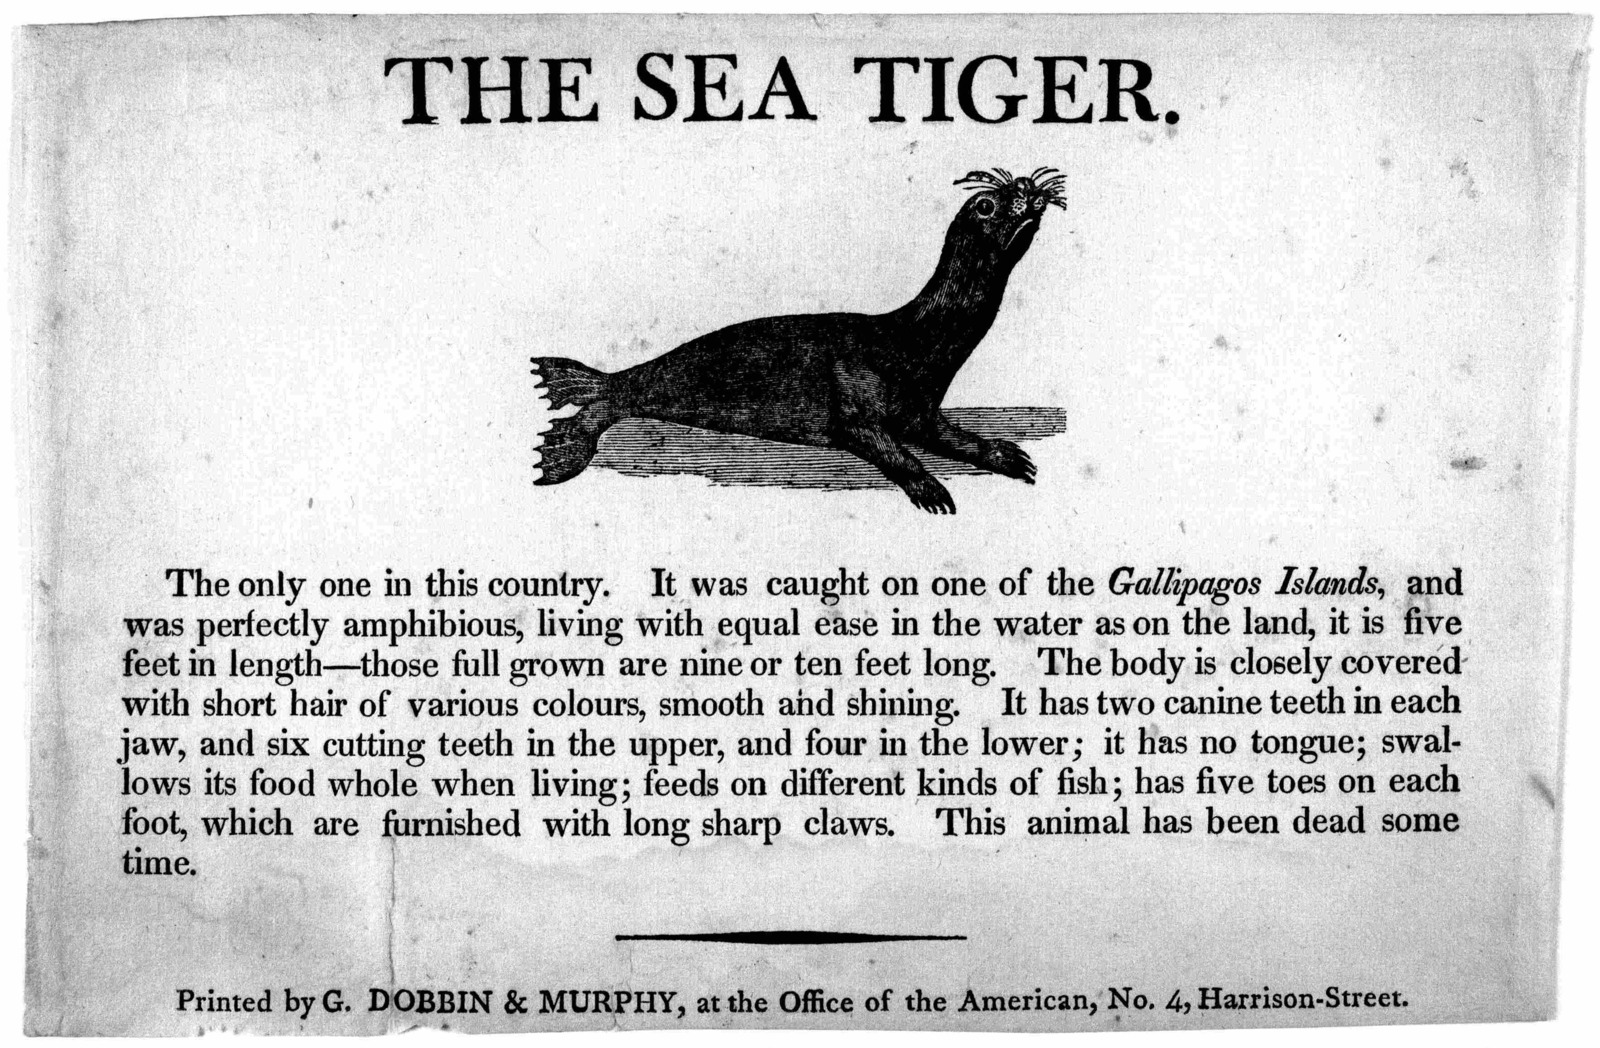 The sea tiger. [Picture of sea tiger] The only one in this country. It was caught on one of the Gallipagos Islands ... Printed by G. Dobbin & Murphy , at the Office of the American, No. 4. Harrison-Street. [n. d.].